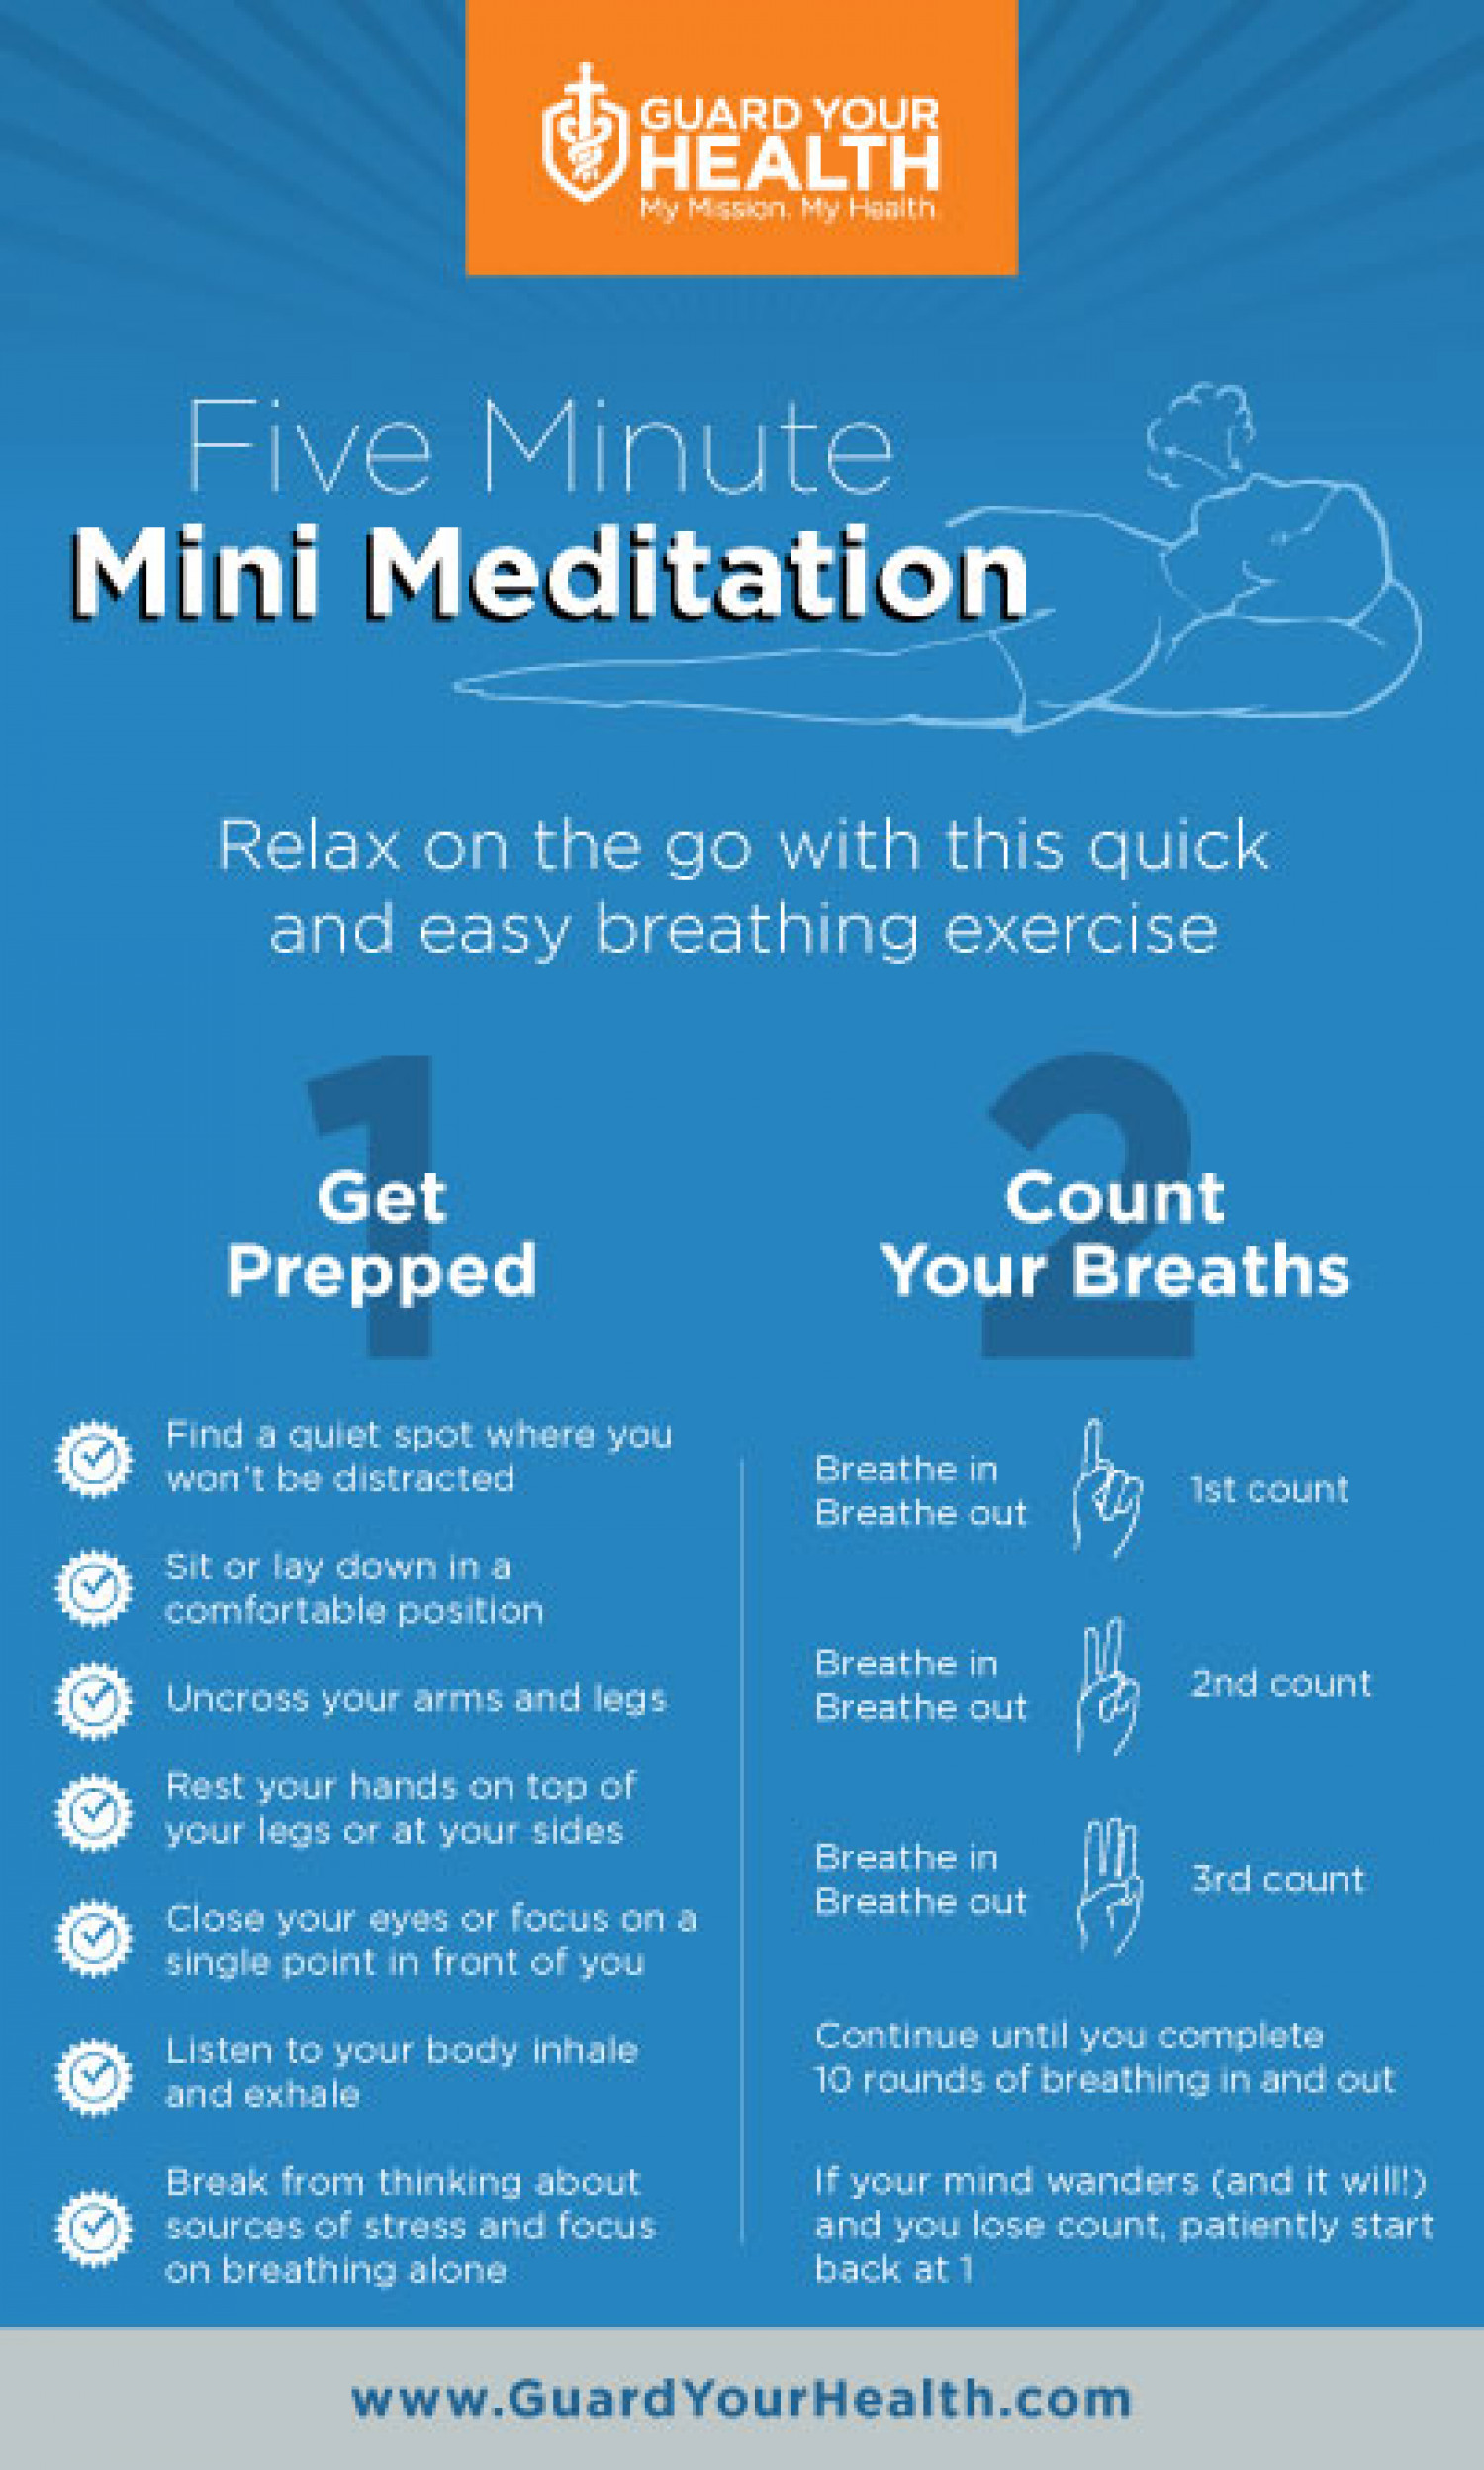 Five Minute Mini Meditation Infographic